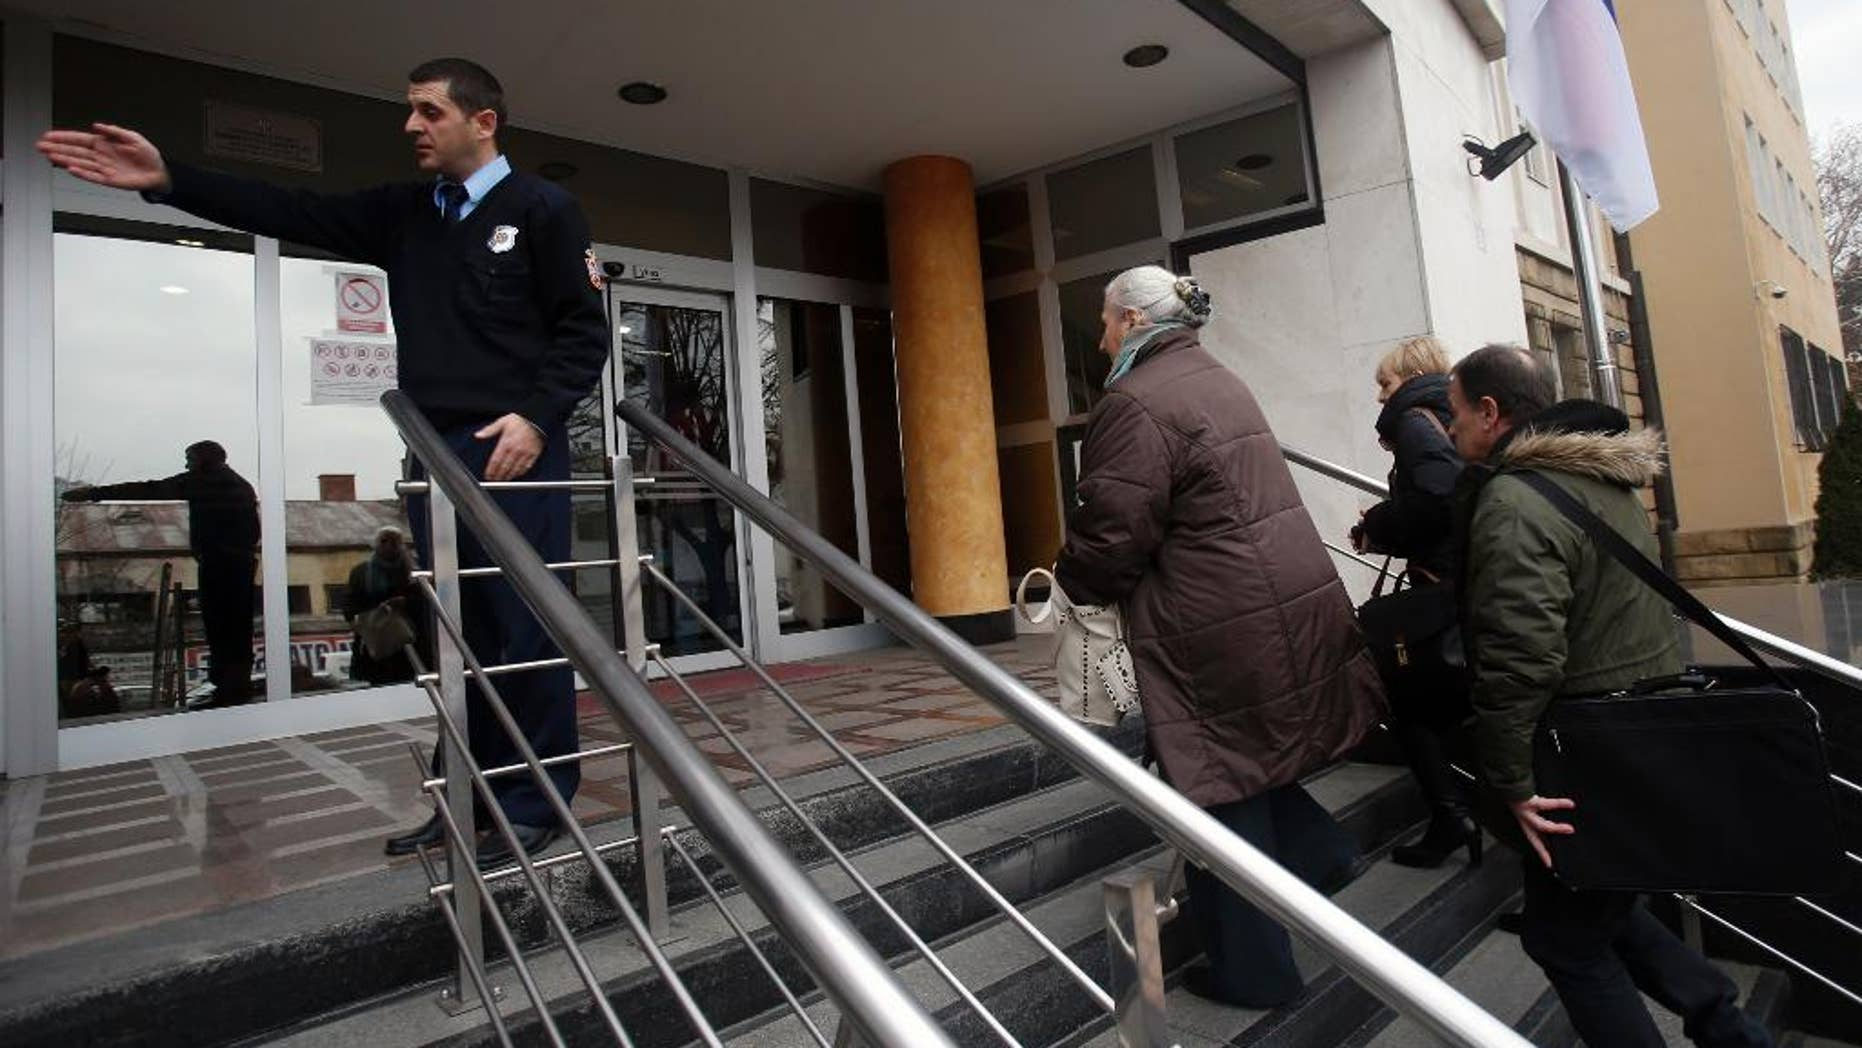 Family members of killed Bosnian Muslim men and boys arrive at the special court building in Belgrade, Serbia, Monday, Dec. 12, 2016. Eight former Bosnian Serb special police troops went on trial Monday in Serbia charged with taking part in the massacre of thousands of Muslims in Srebrenica in 1995 - a landmark proceedings testing the Balkan country's proclaimed pledge to deal with its wartime past. (AP Photo/Darko Vojinovic)